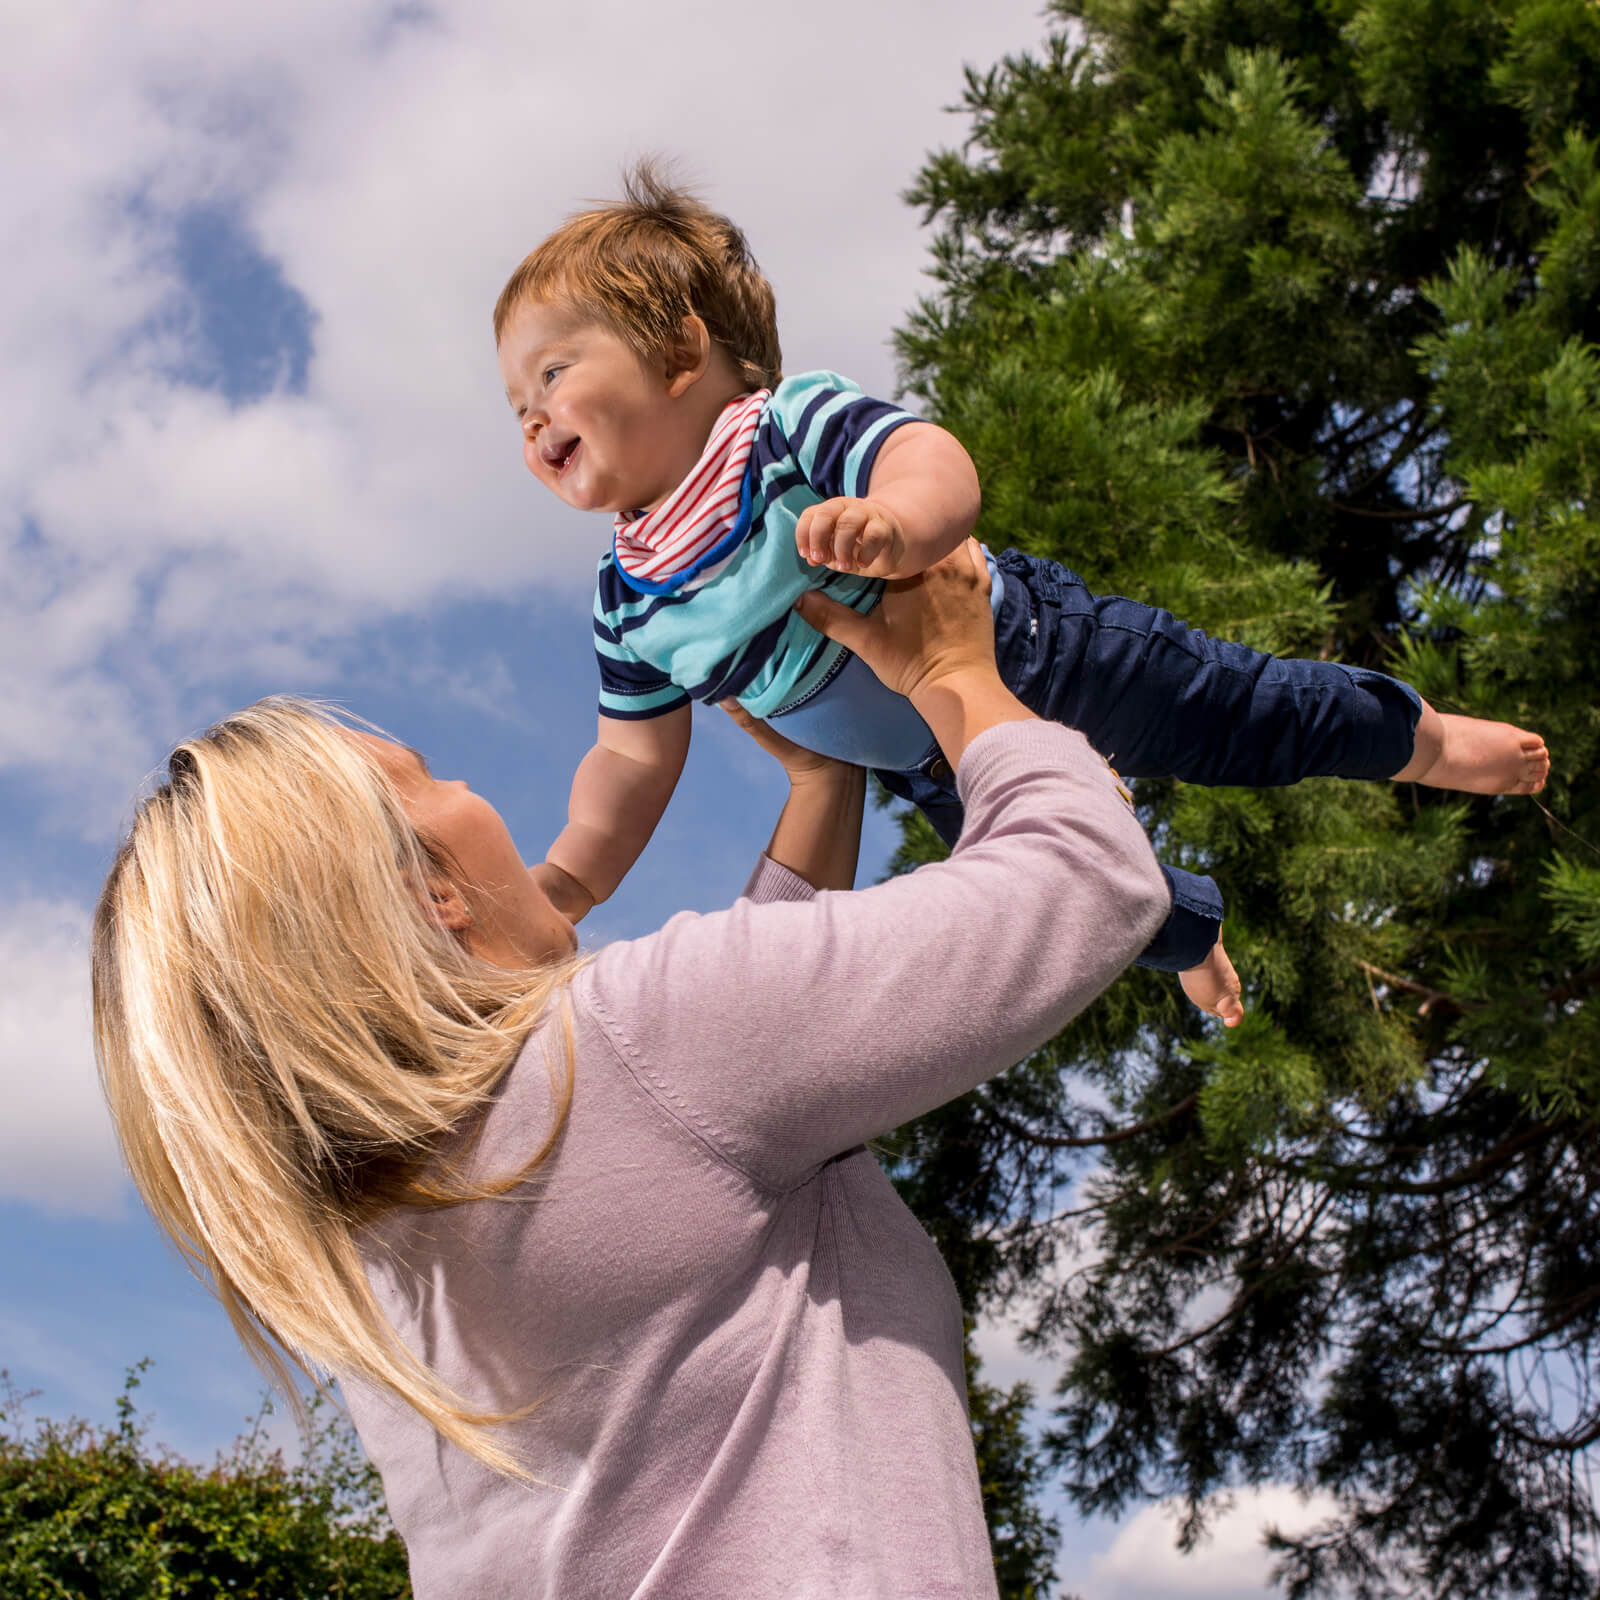 Woman holding child in the air